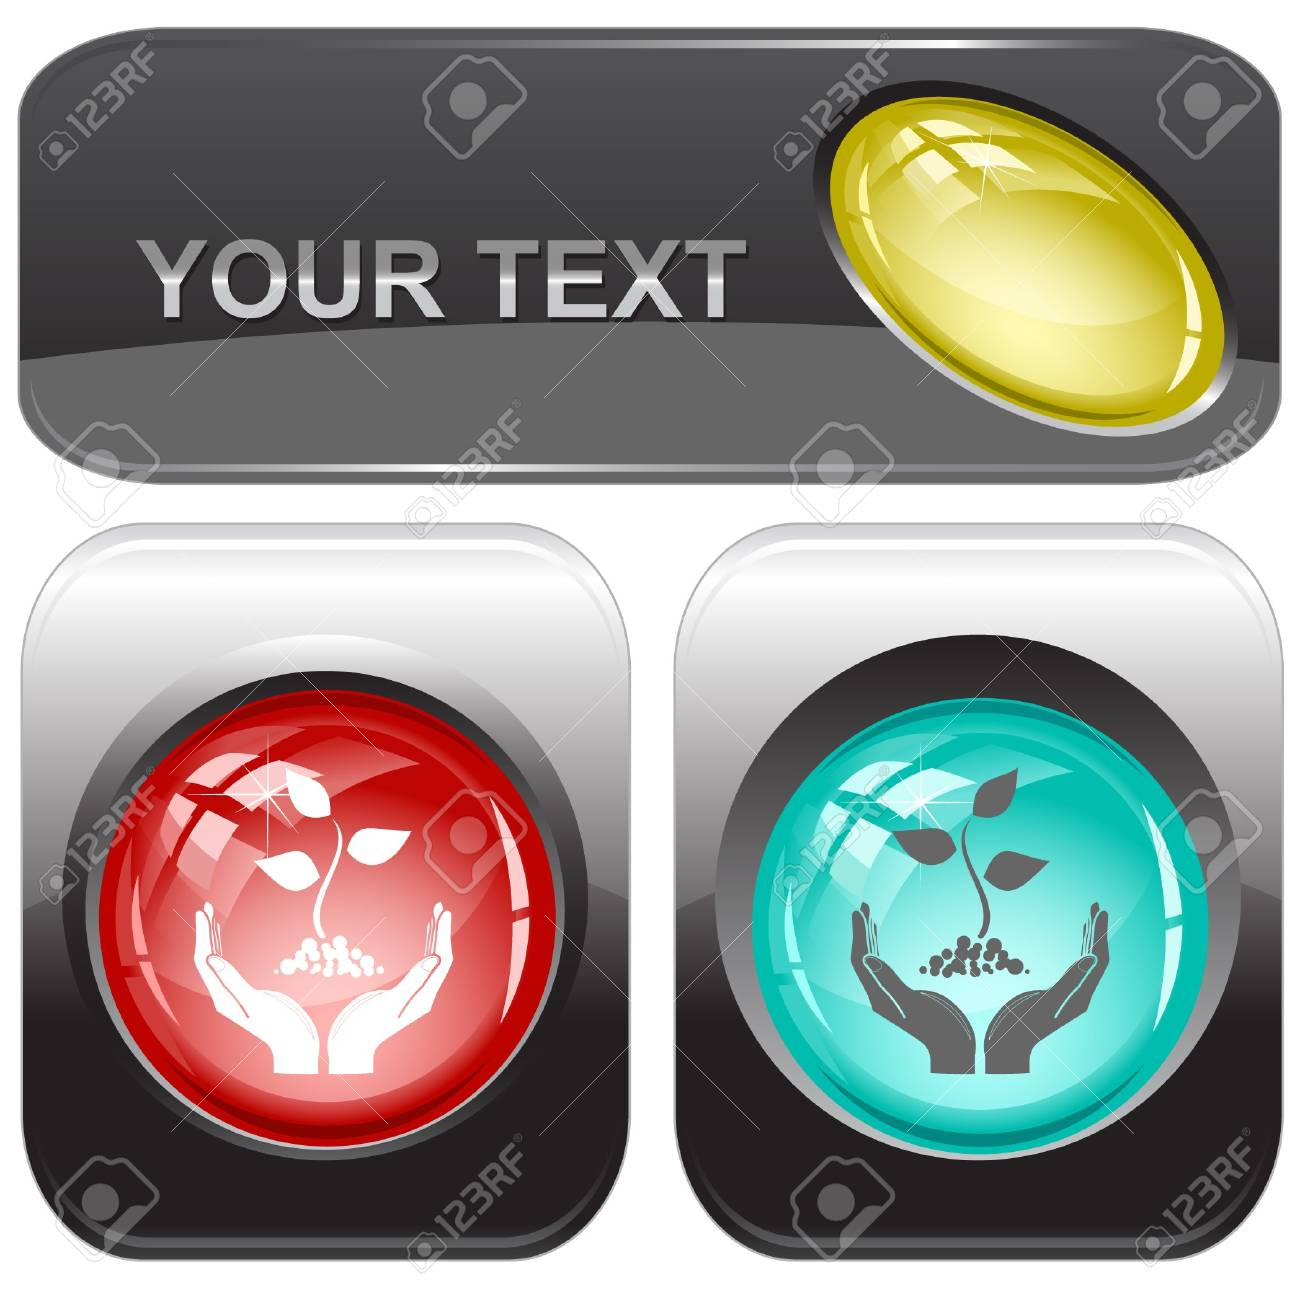 life in hands. Vector internet buttons. Stock Photo - 8179306